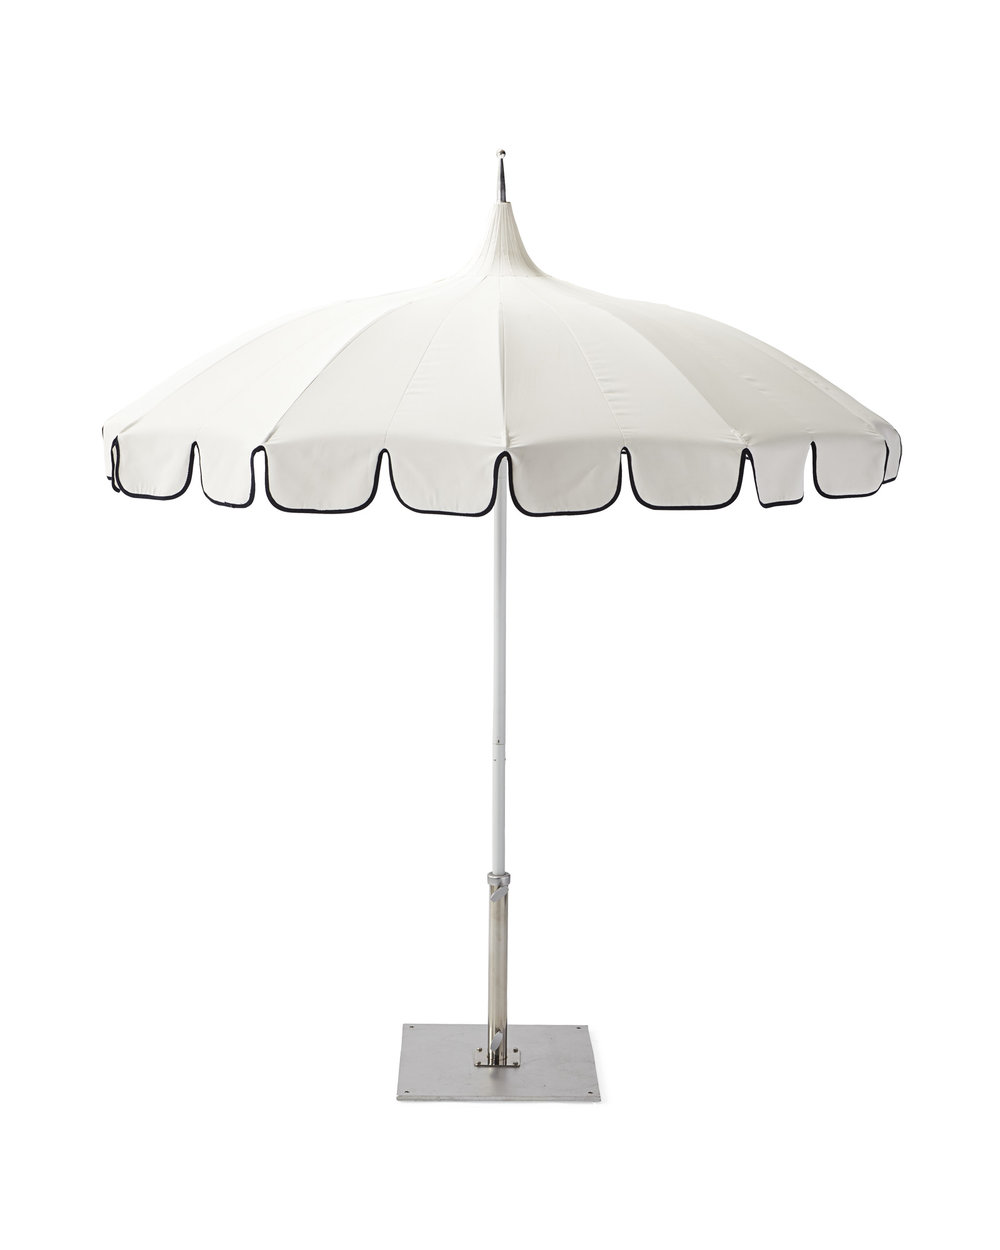 Umbrella_Eastport_White_Navy_Trim_MV_Crop_SH.jpg